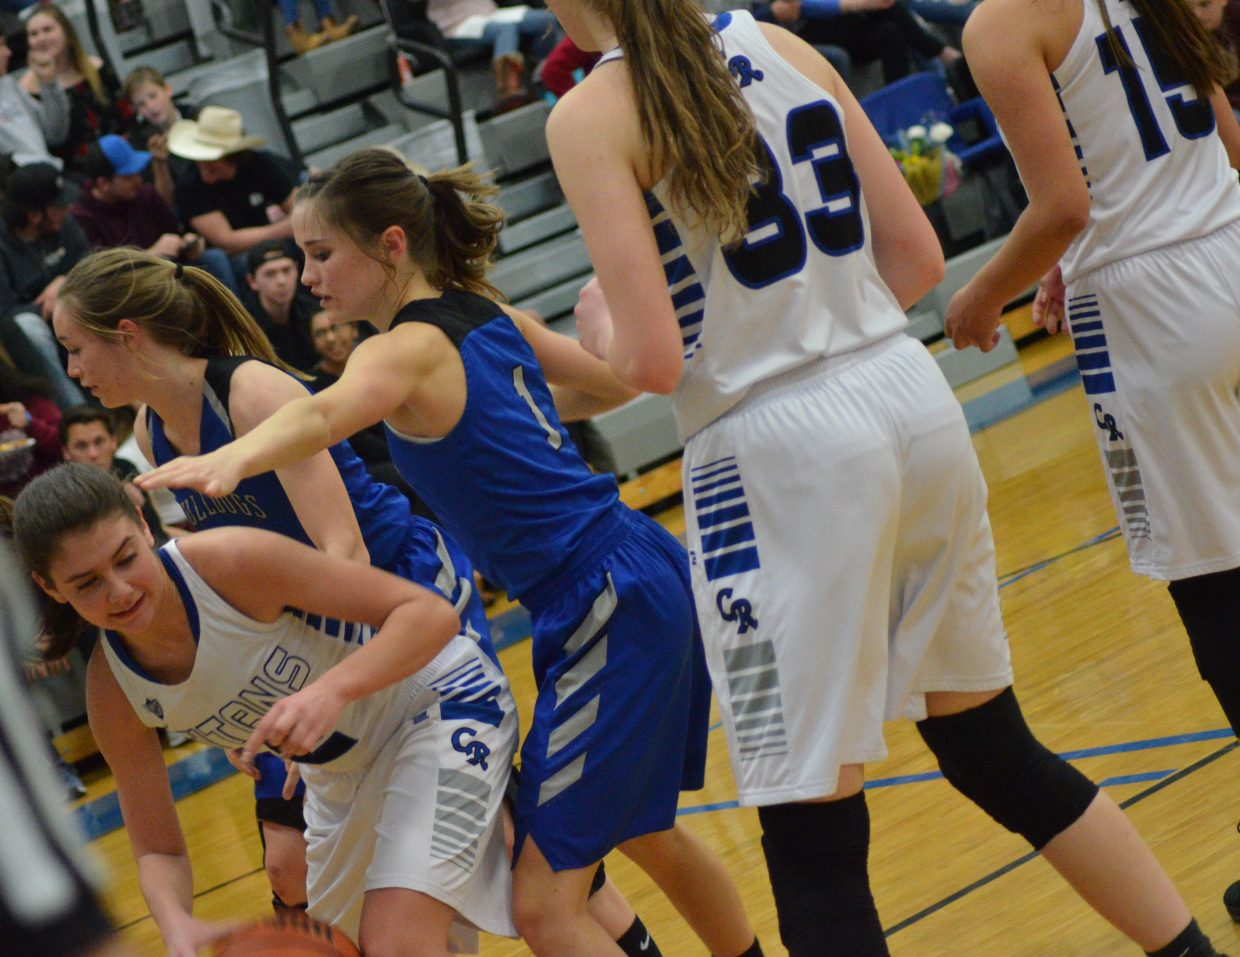 Moffat County High School's Madie Weber and Stephenie Swindler provide full-court pressure against Coal Ridge.